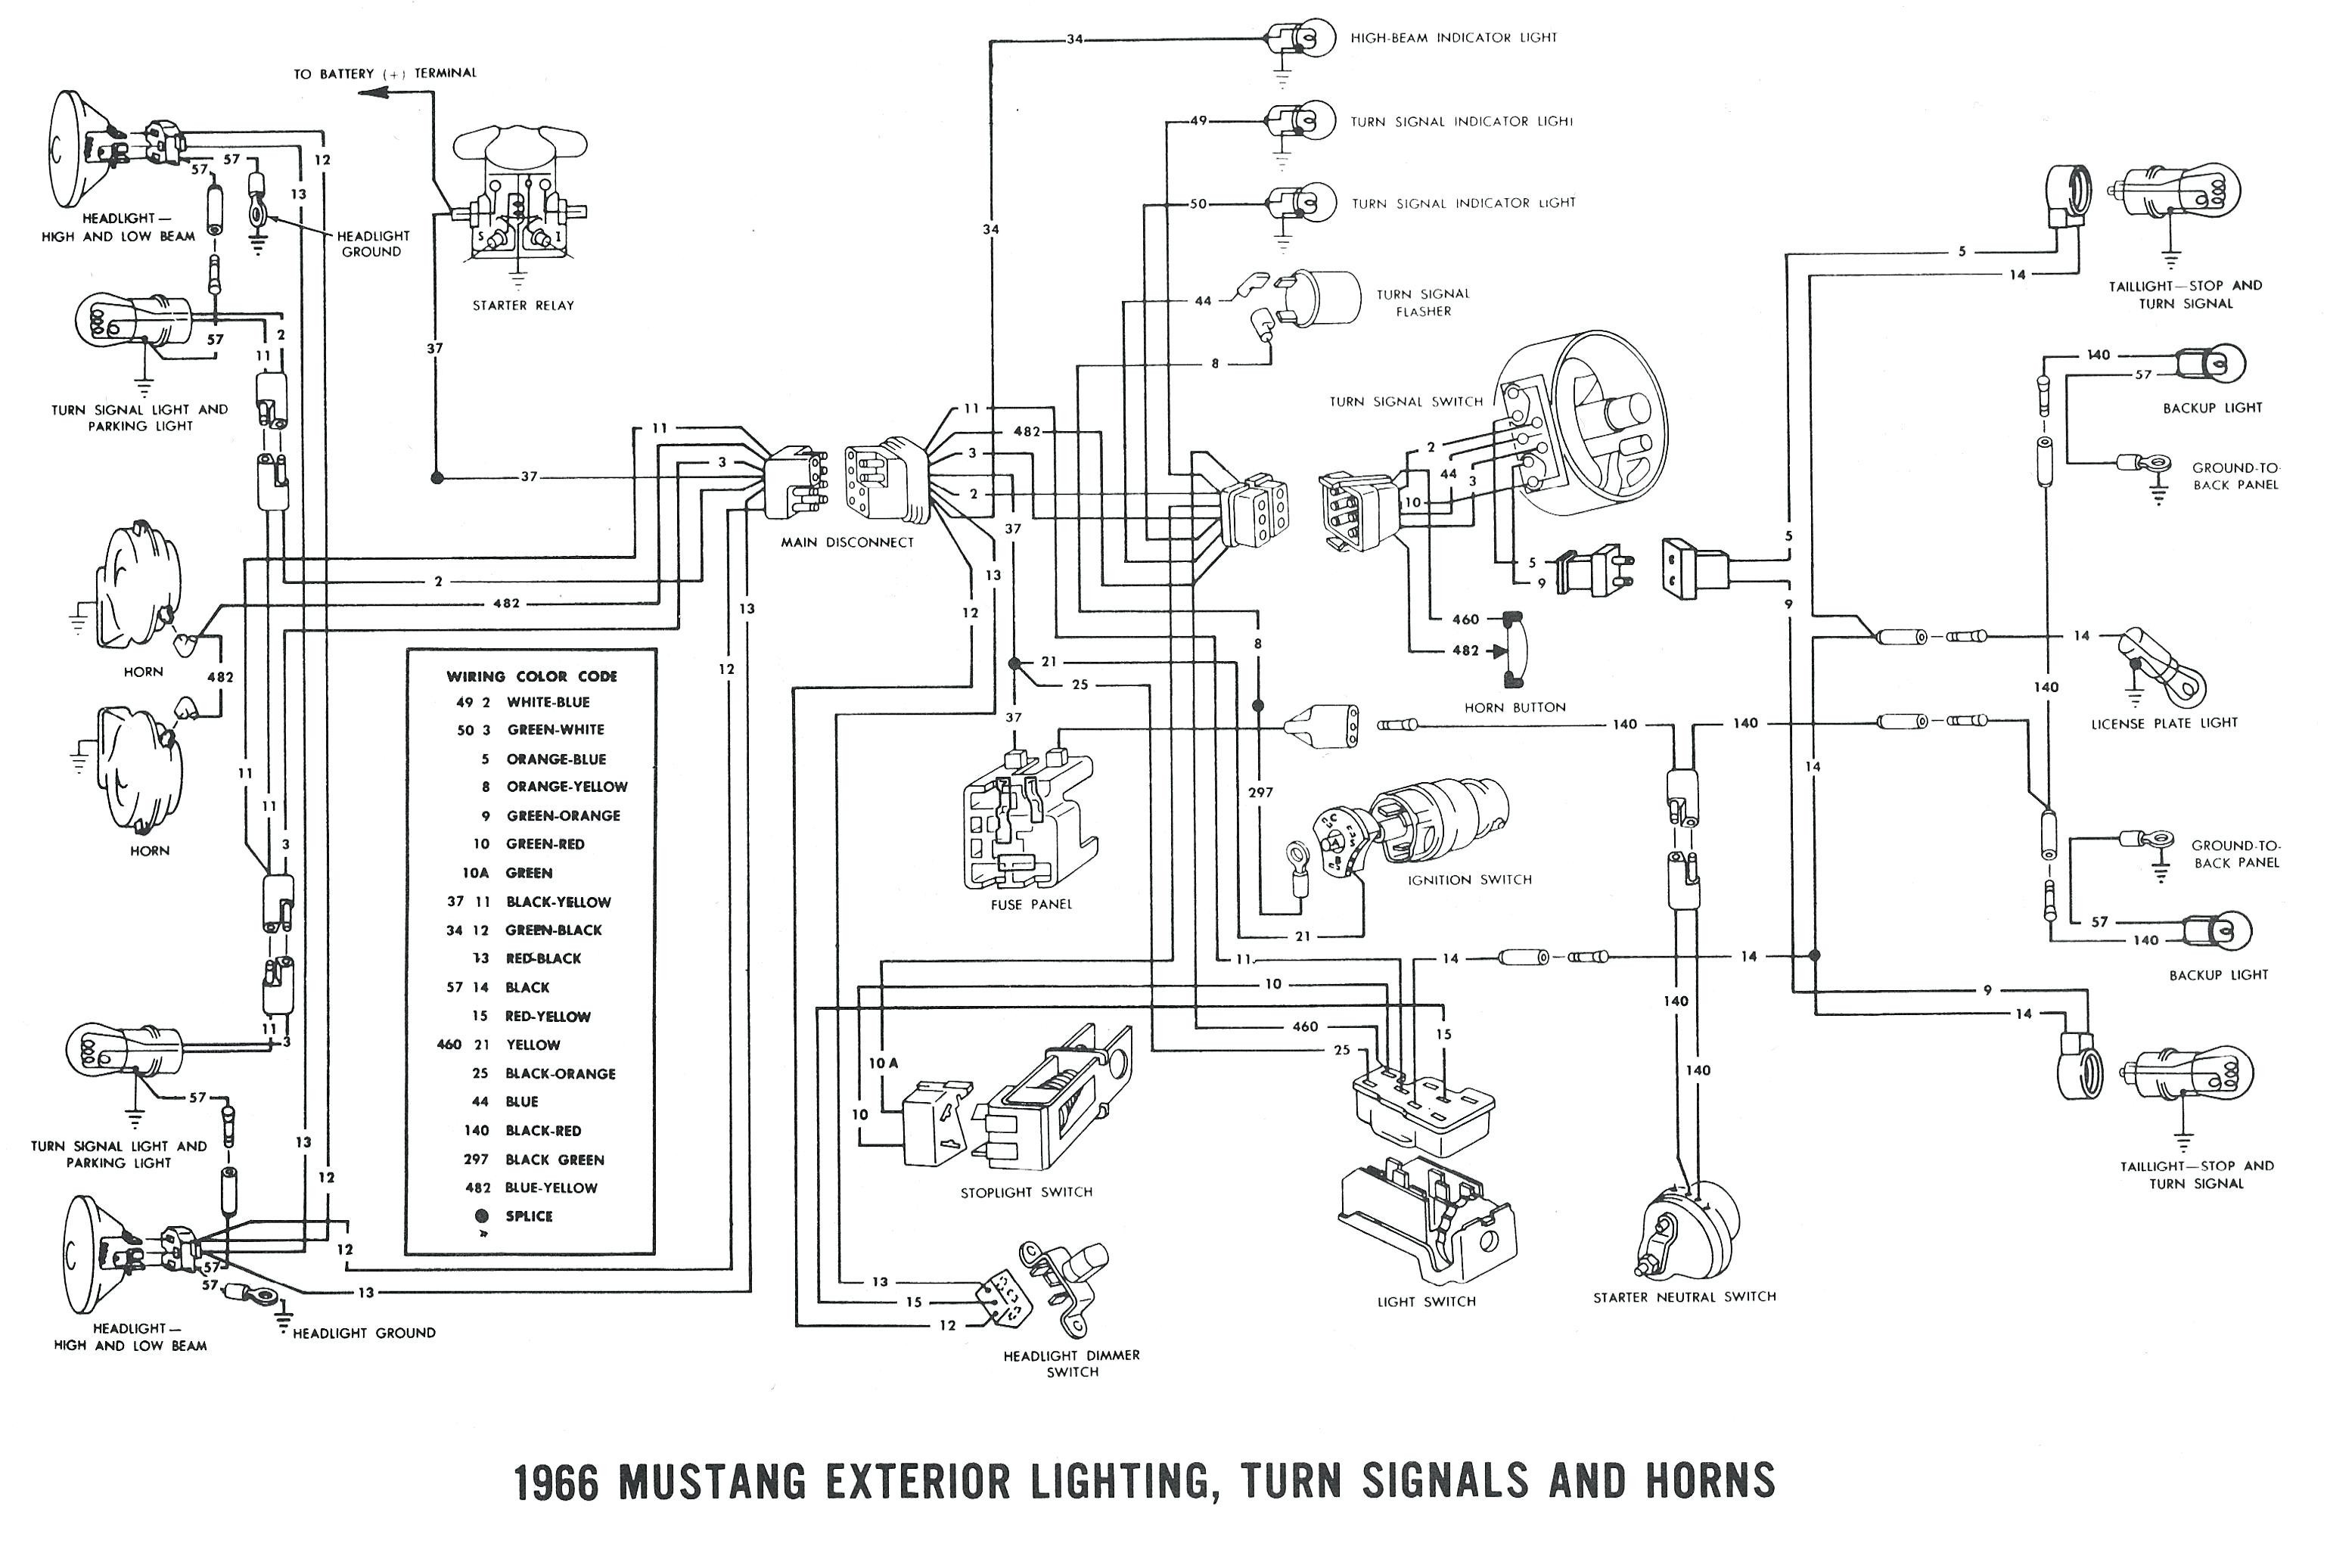 DIAGRAM] 1969 Camaro Horn Wiring Diagram FULL Version HD Quality Wiring  Diagram - ABSOLUTEWIRING.FABRICELEFEVREINSTITUT.FRfabrice lefevre institut